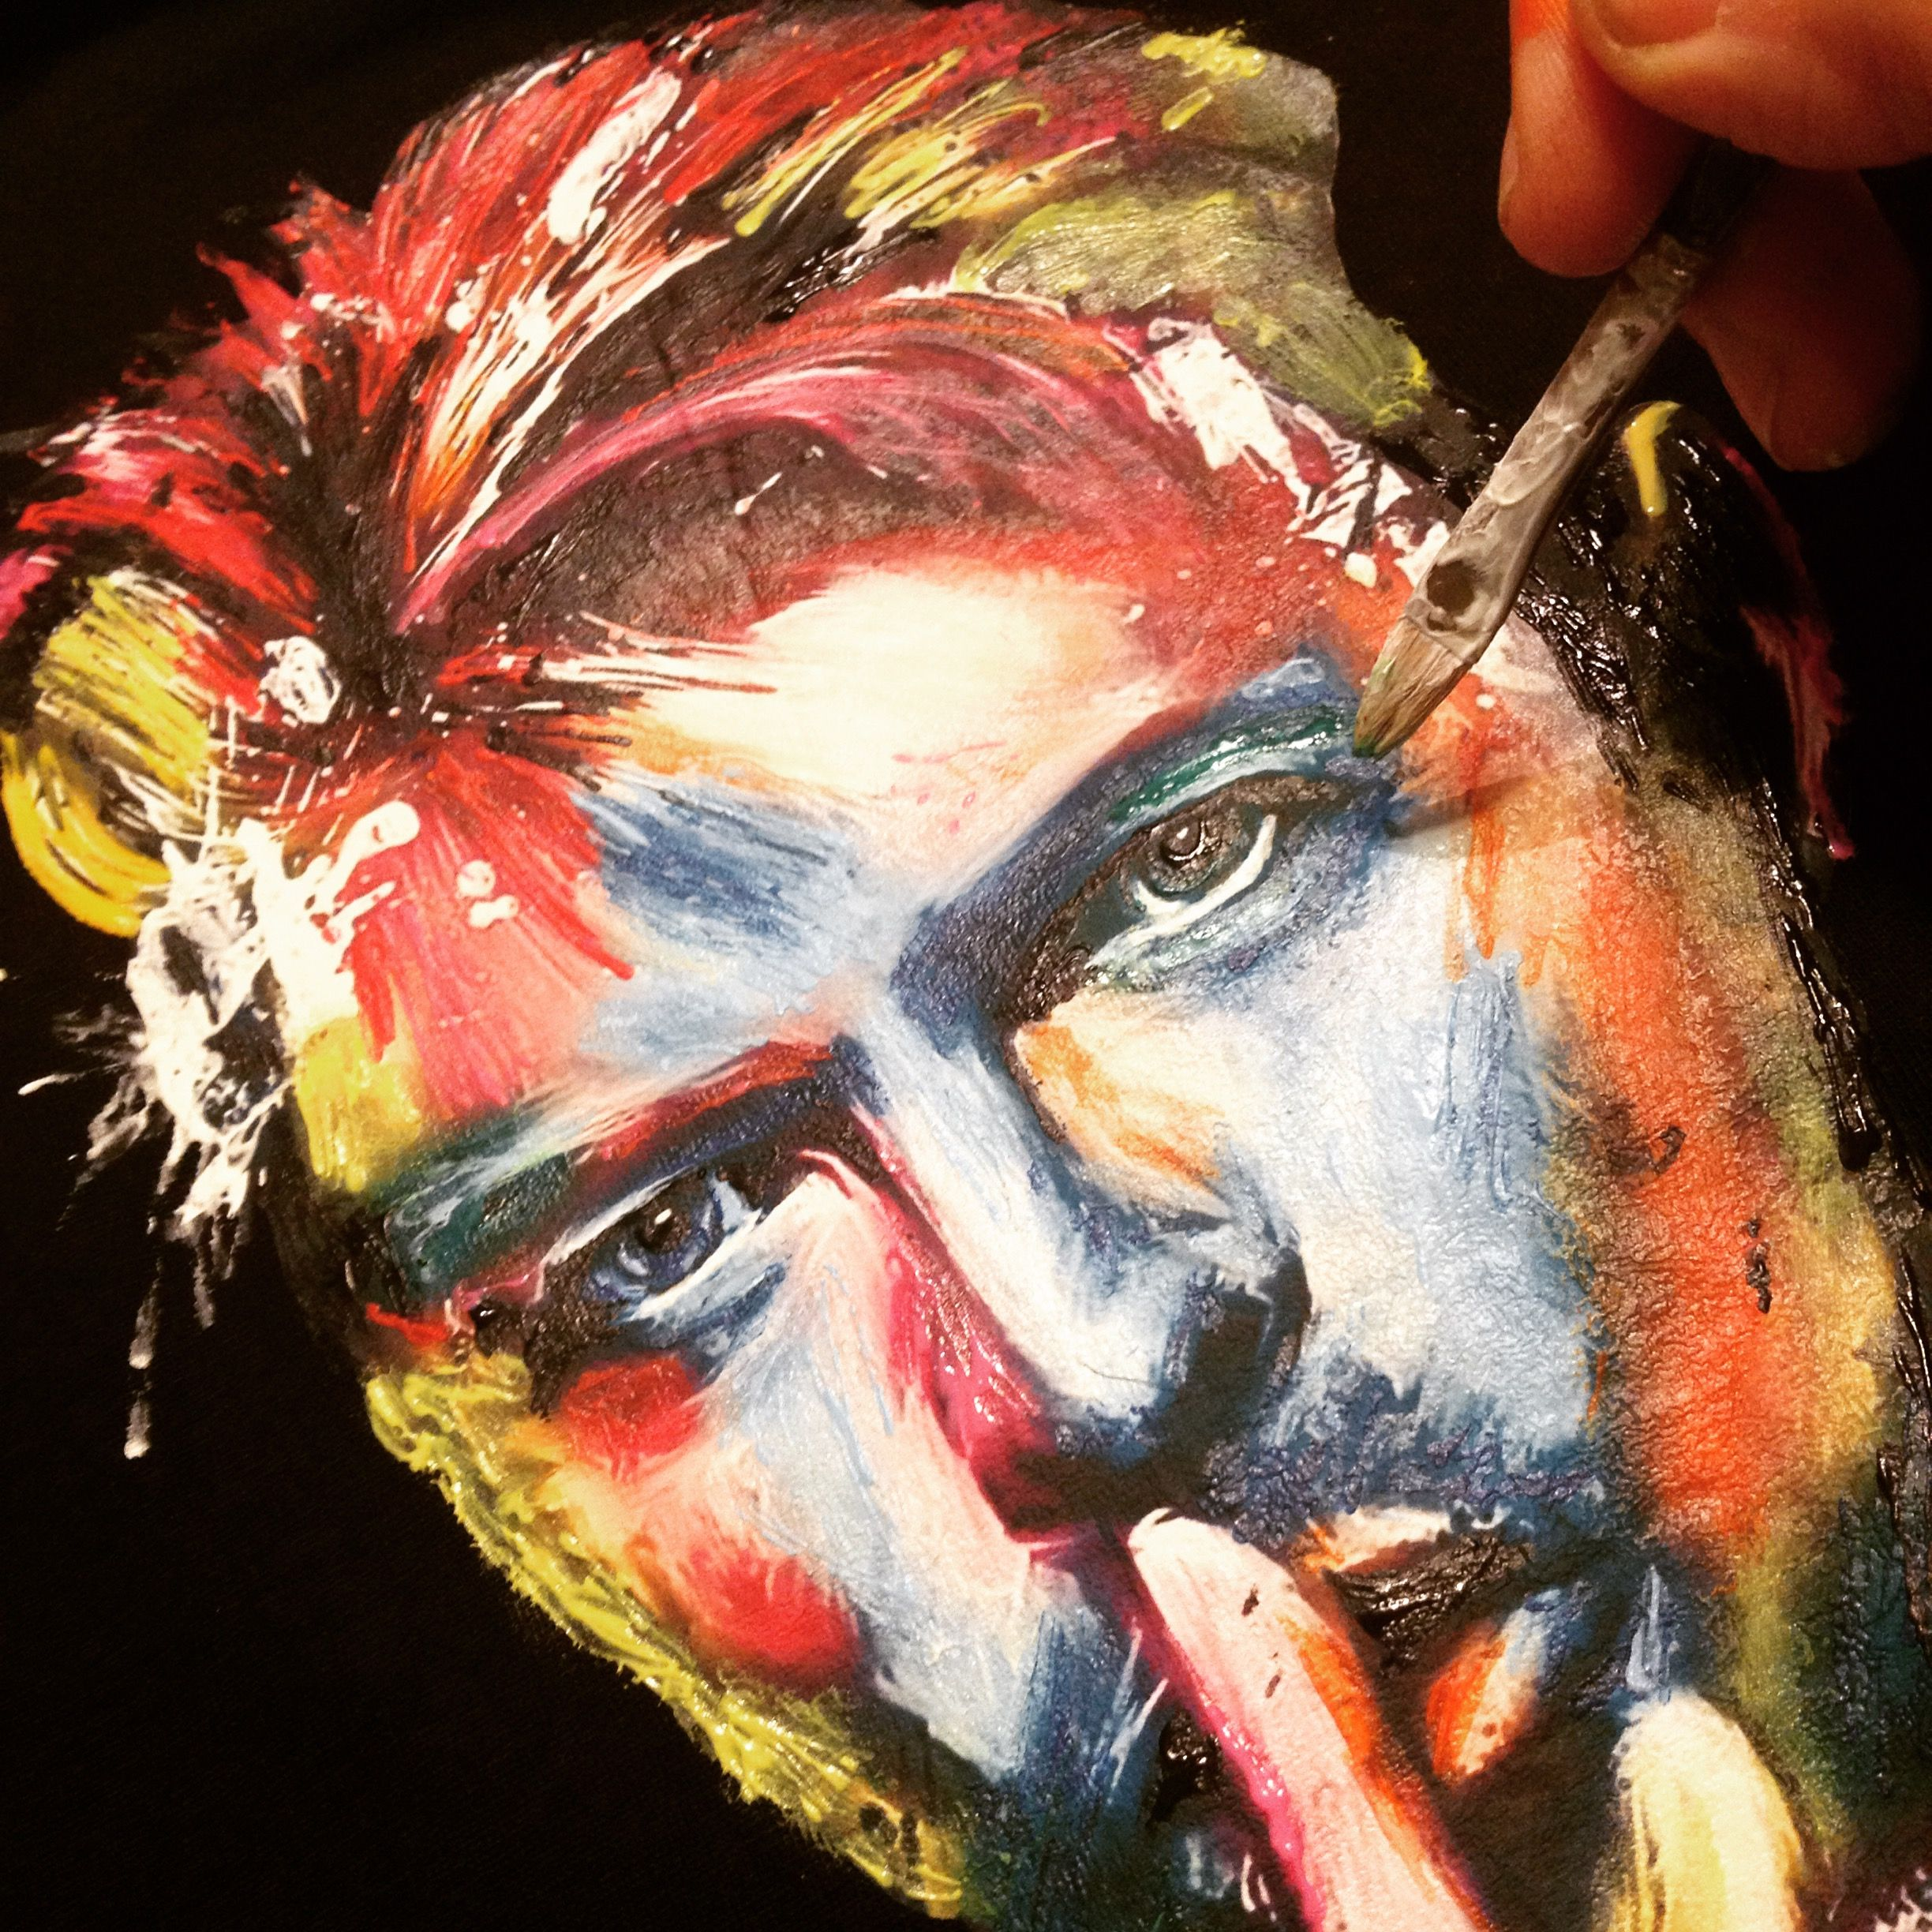 I'm painting David Bowie's tshirt with my 3d water colors